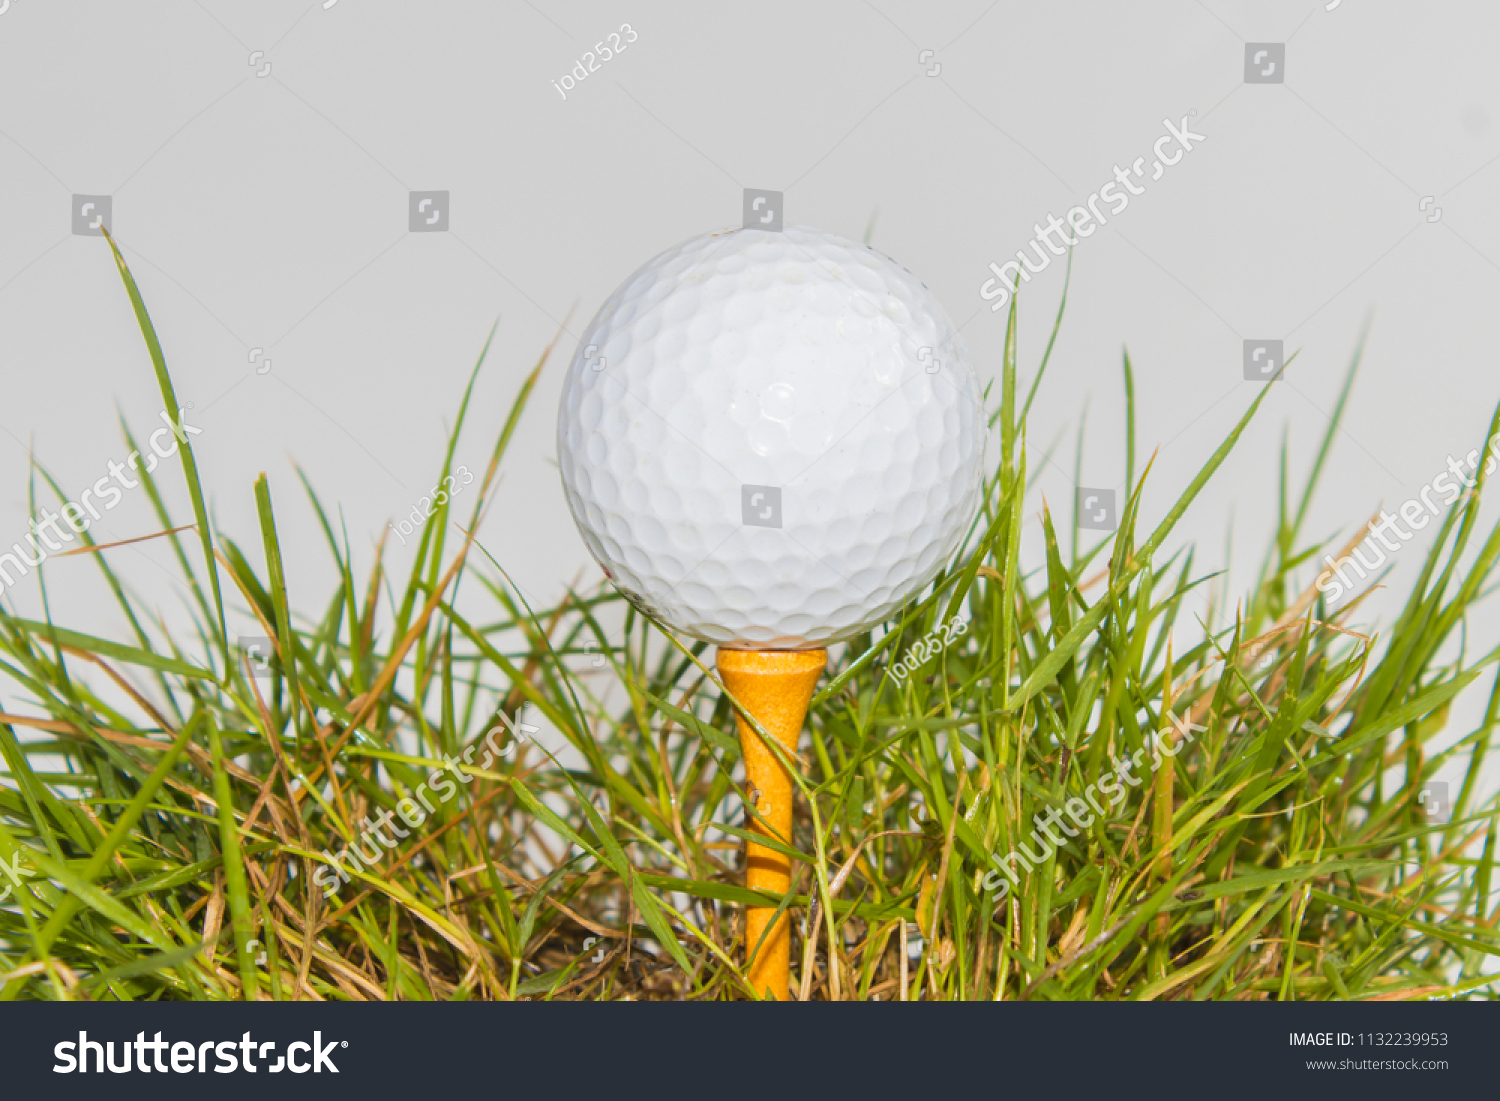 6b9751e8a7c8 Golf balls on pins With grass which are concept Sport poster or website  design